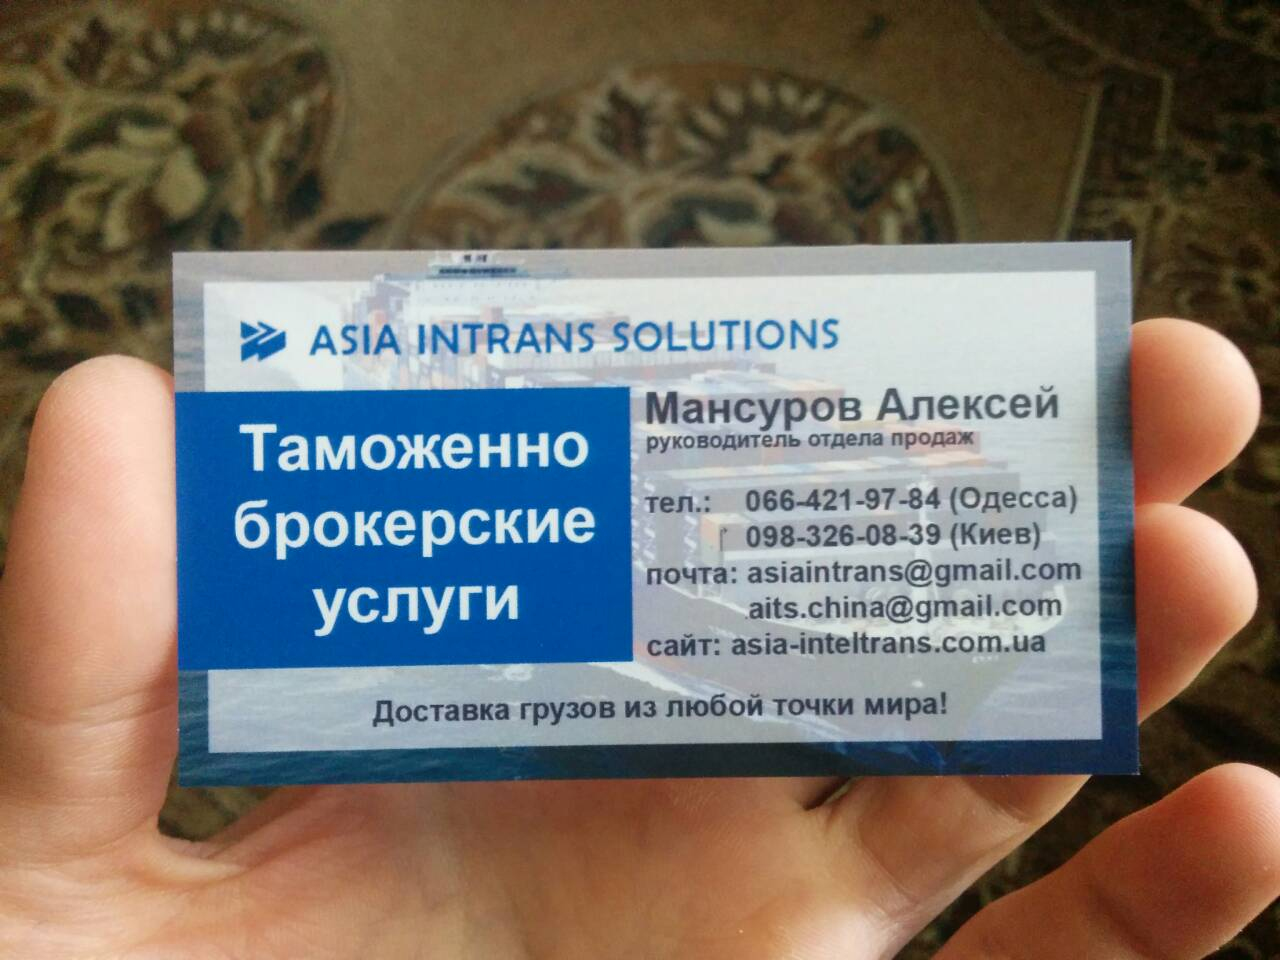 Asia Intrans Solution